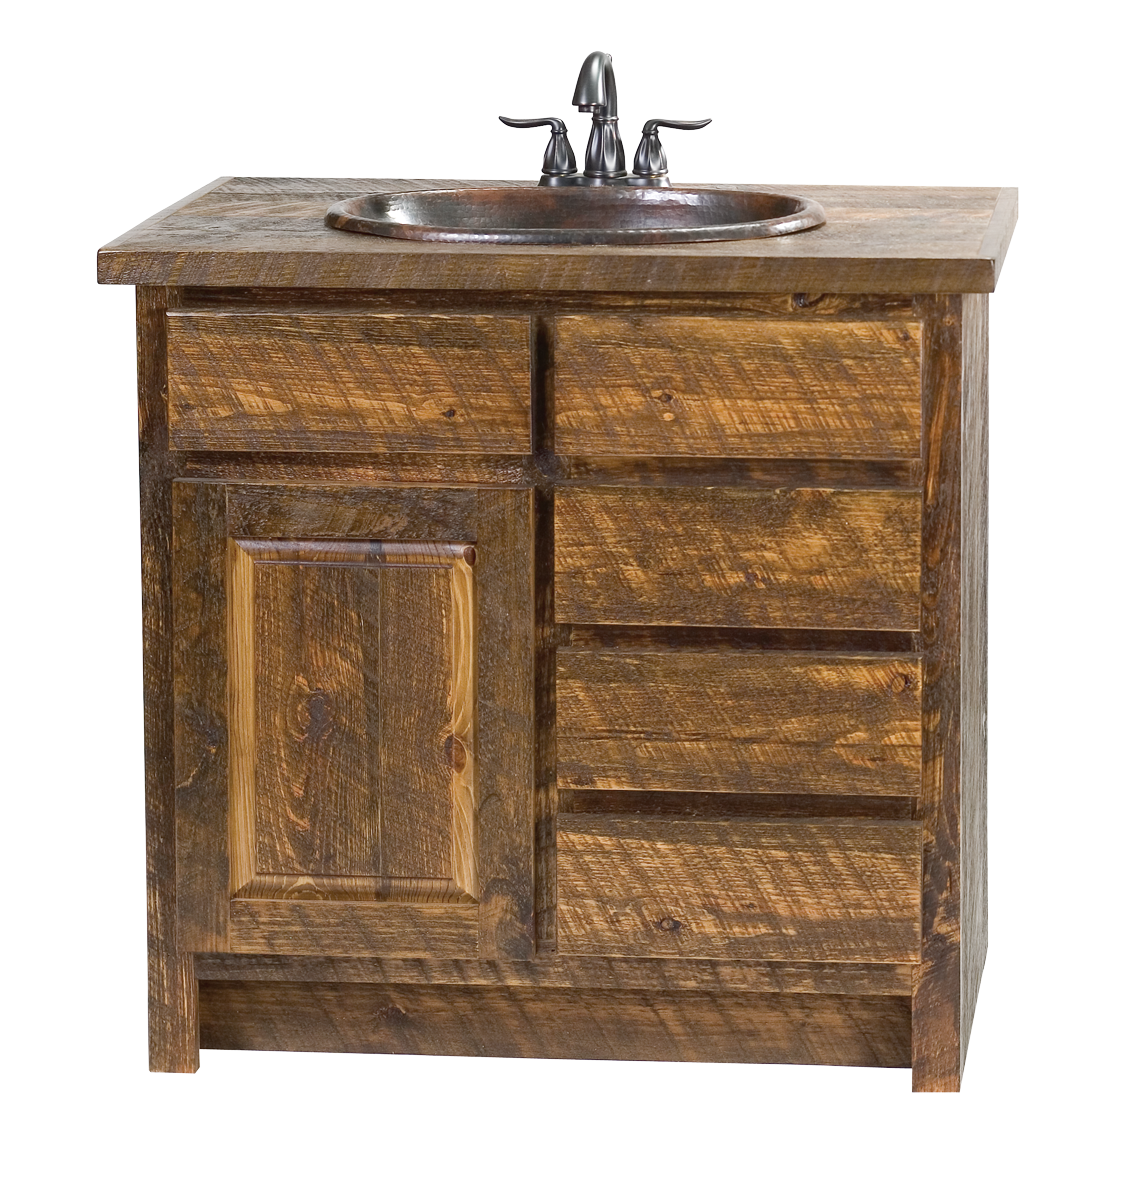 Faux barn wood vanity rustic furniture mall by timber for Furniture barn